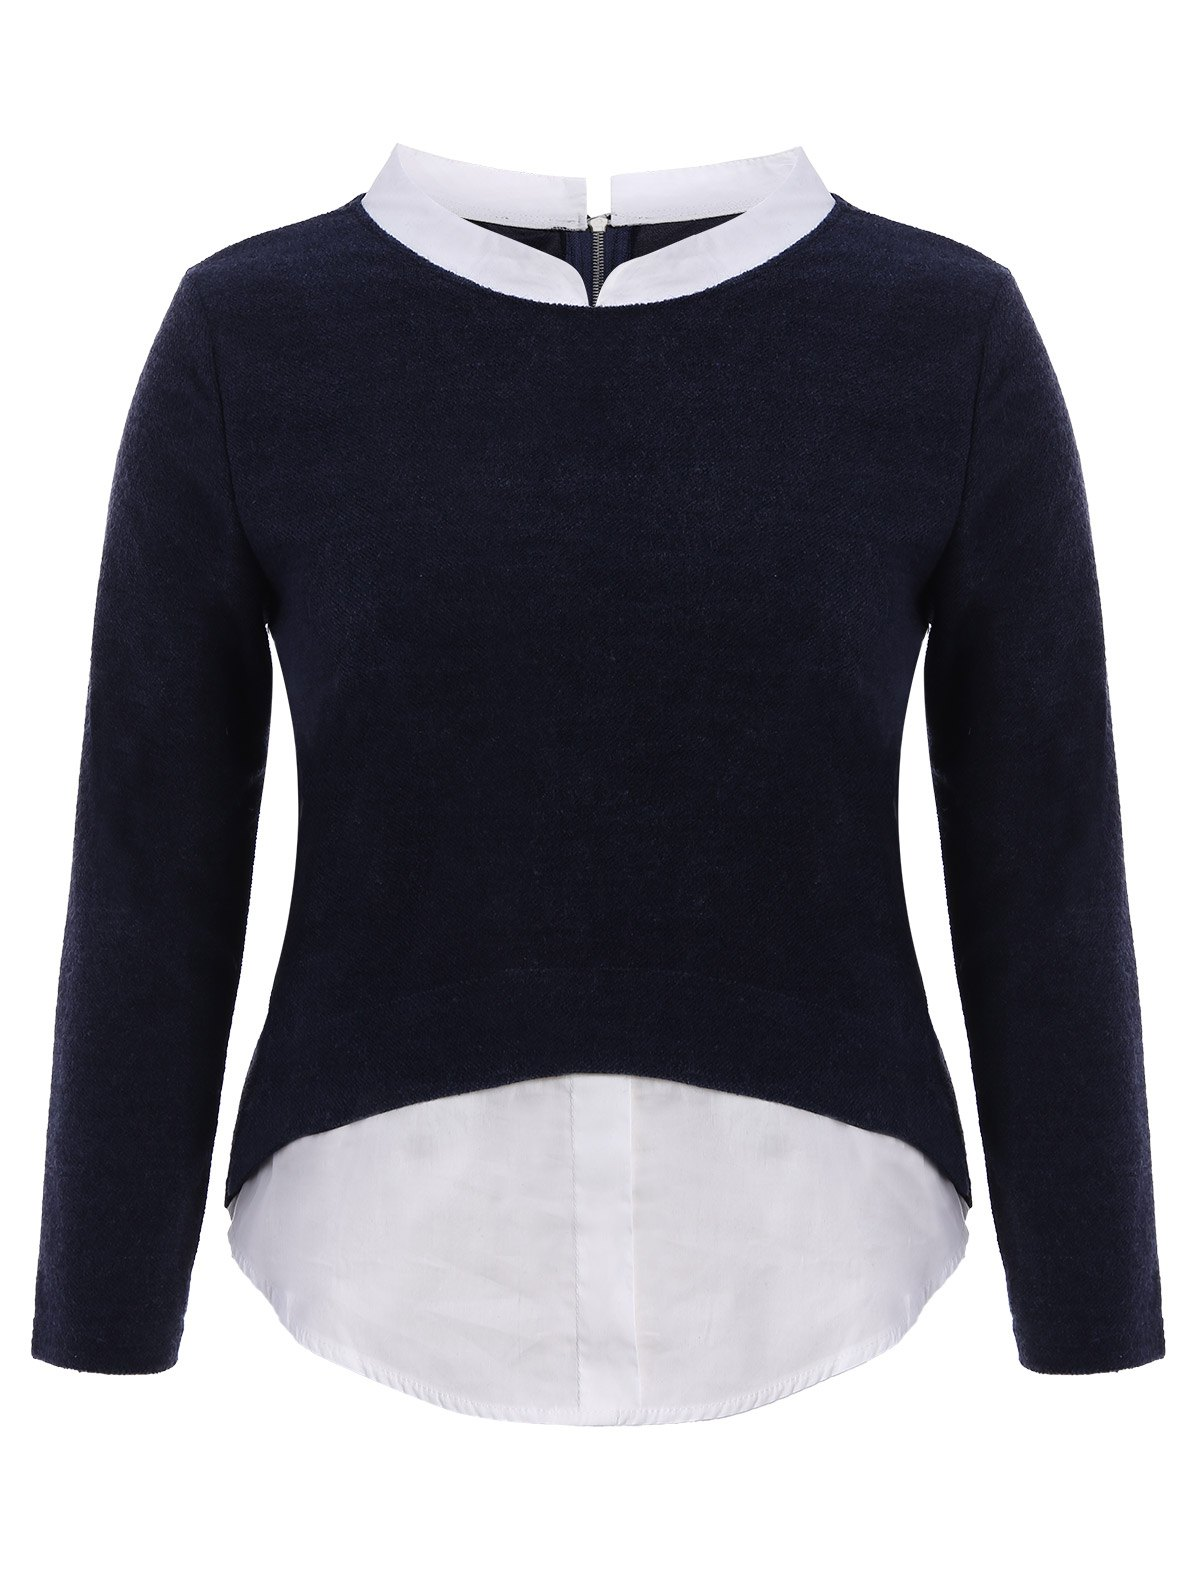 Plus Size Stand Collar Long Sleeve TopWomen<br><br><br>Size: 2XL<br>Color: PURPLISH BLUE